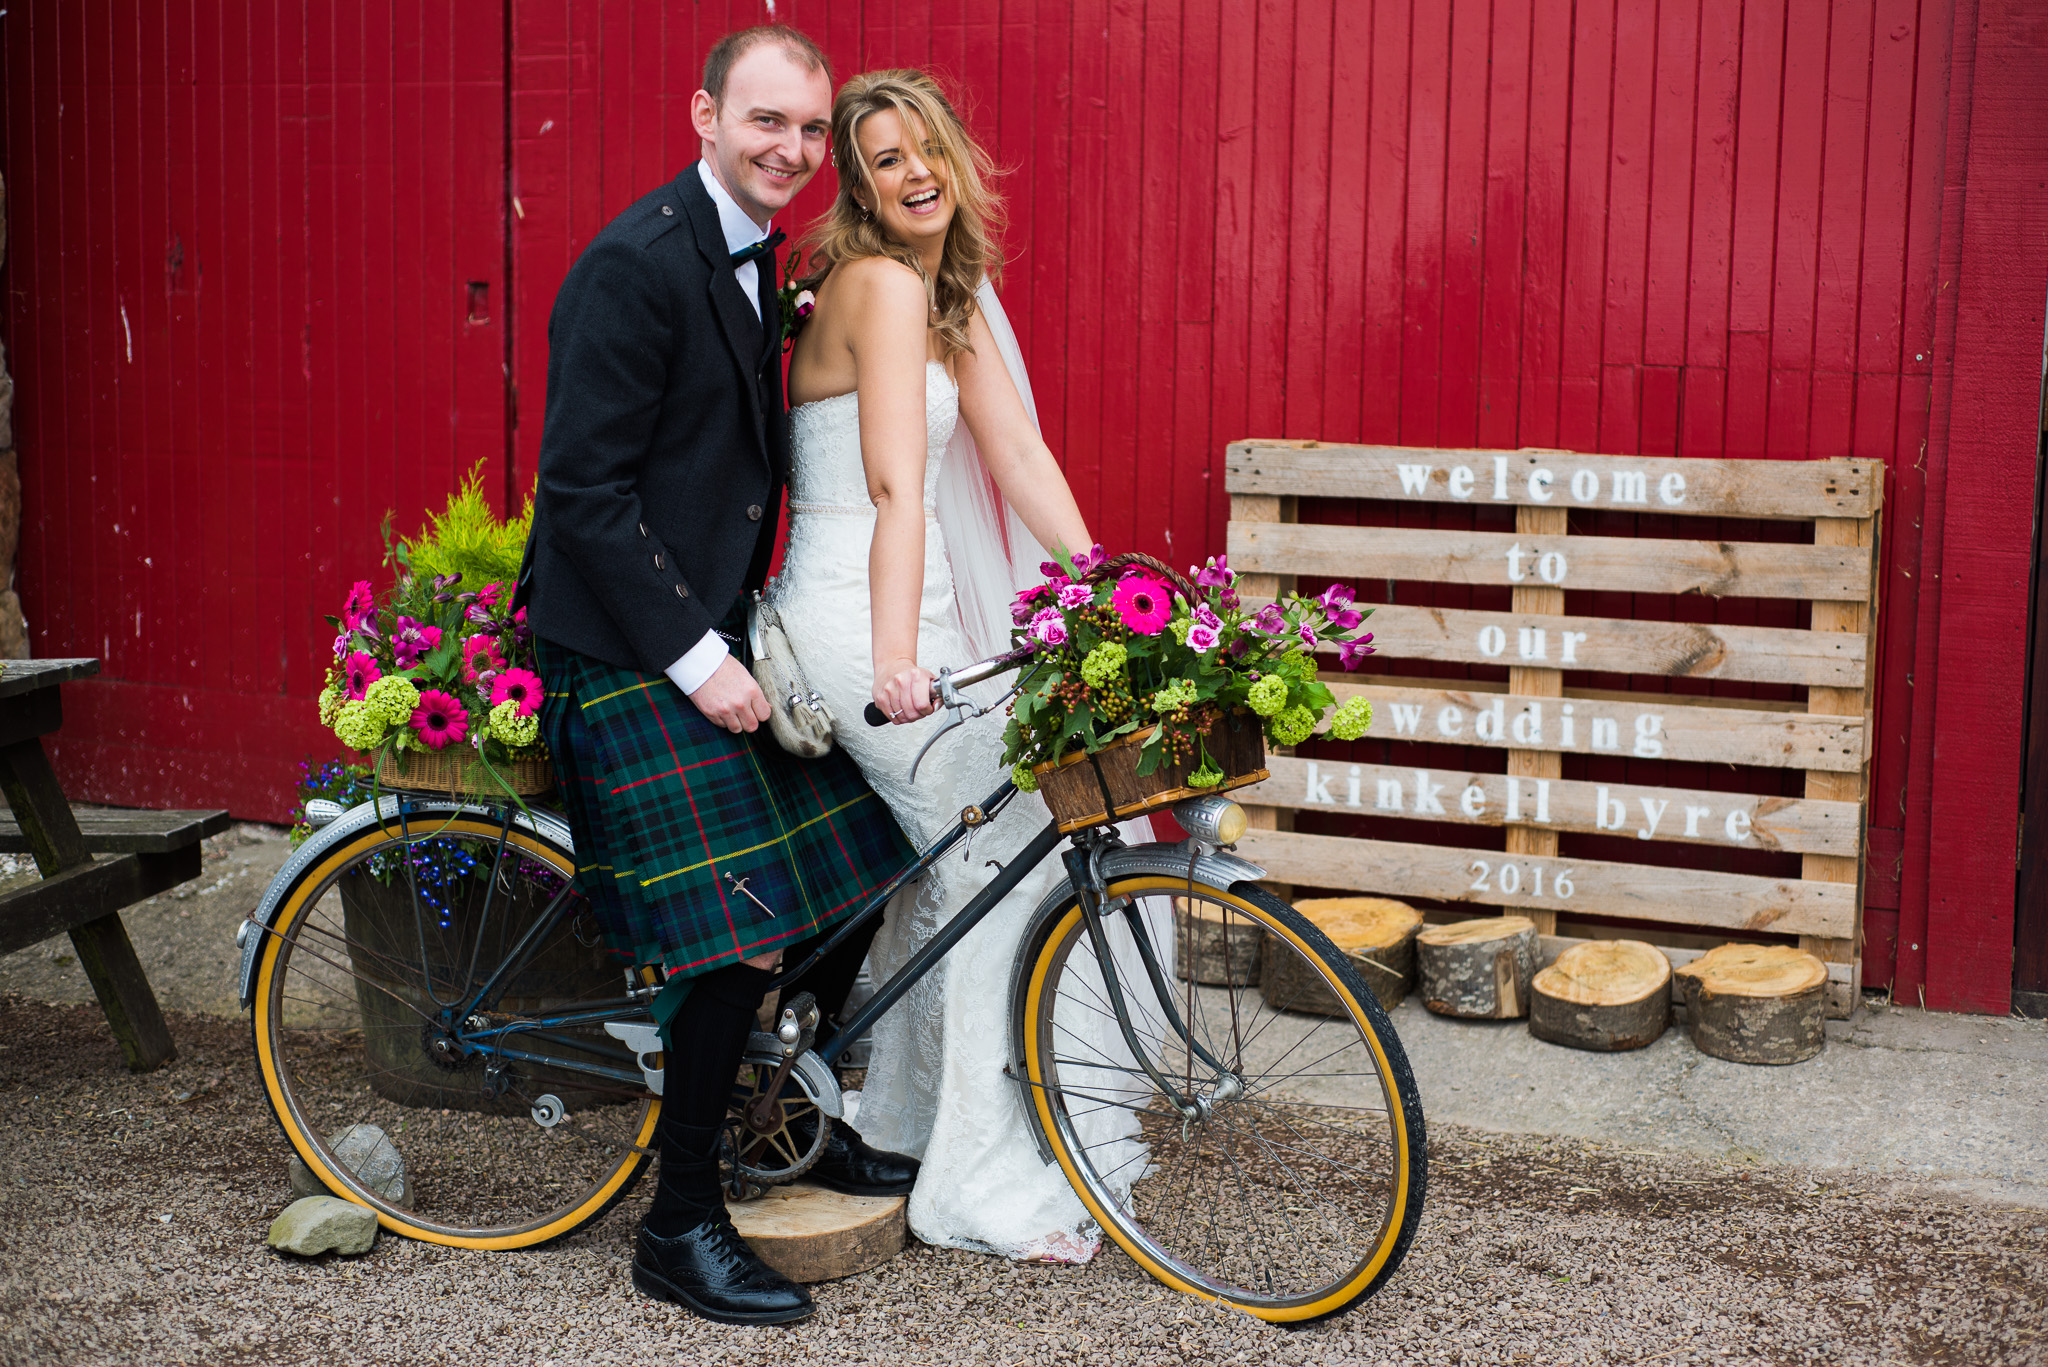 Kinkell Byre Bicycle Wedding